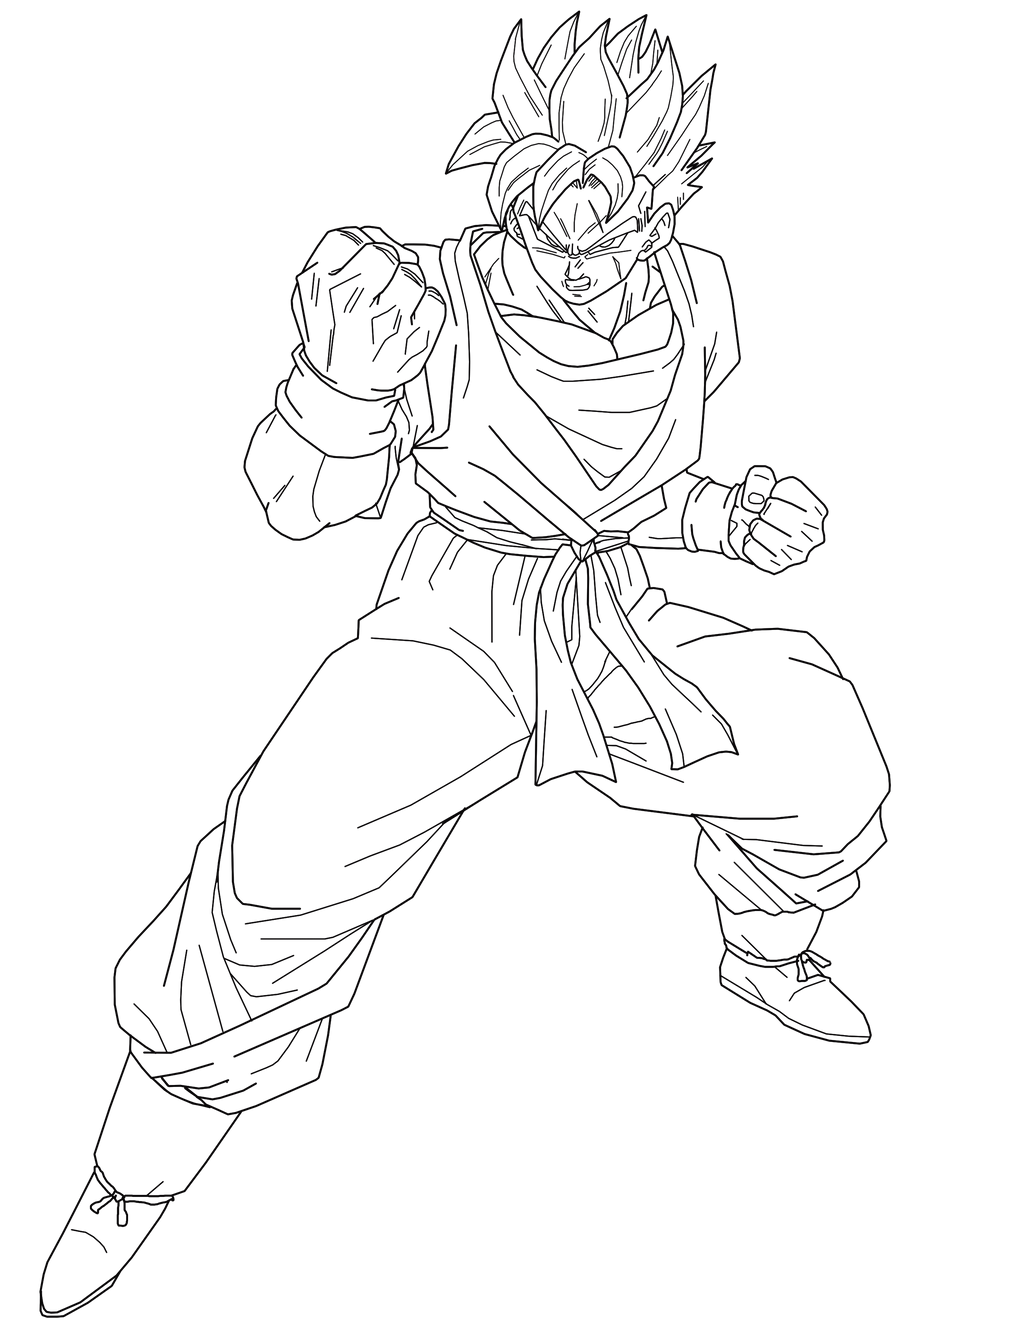 super saiyan future gohan version 2 lineart by brusselthesaiyan on